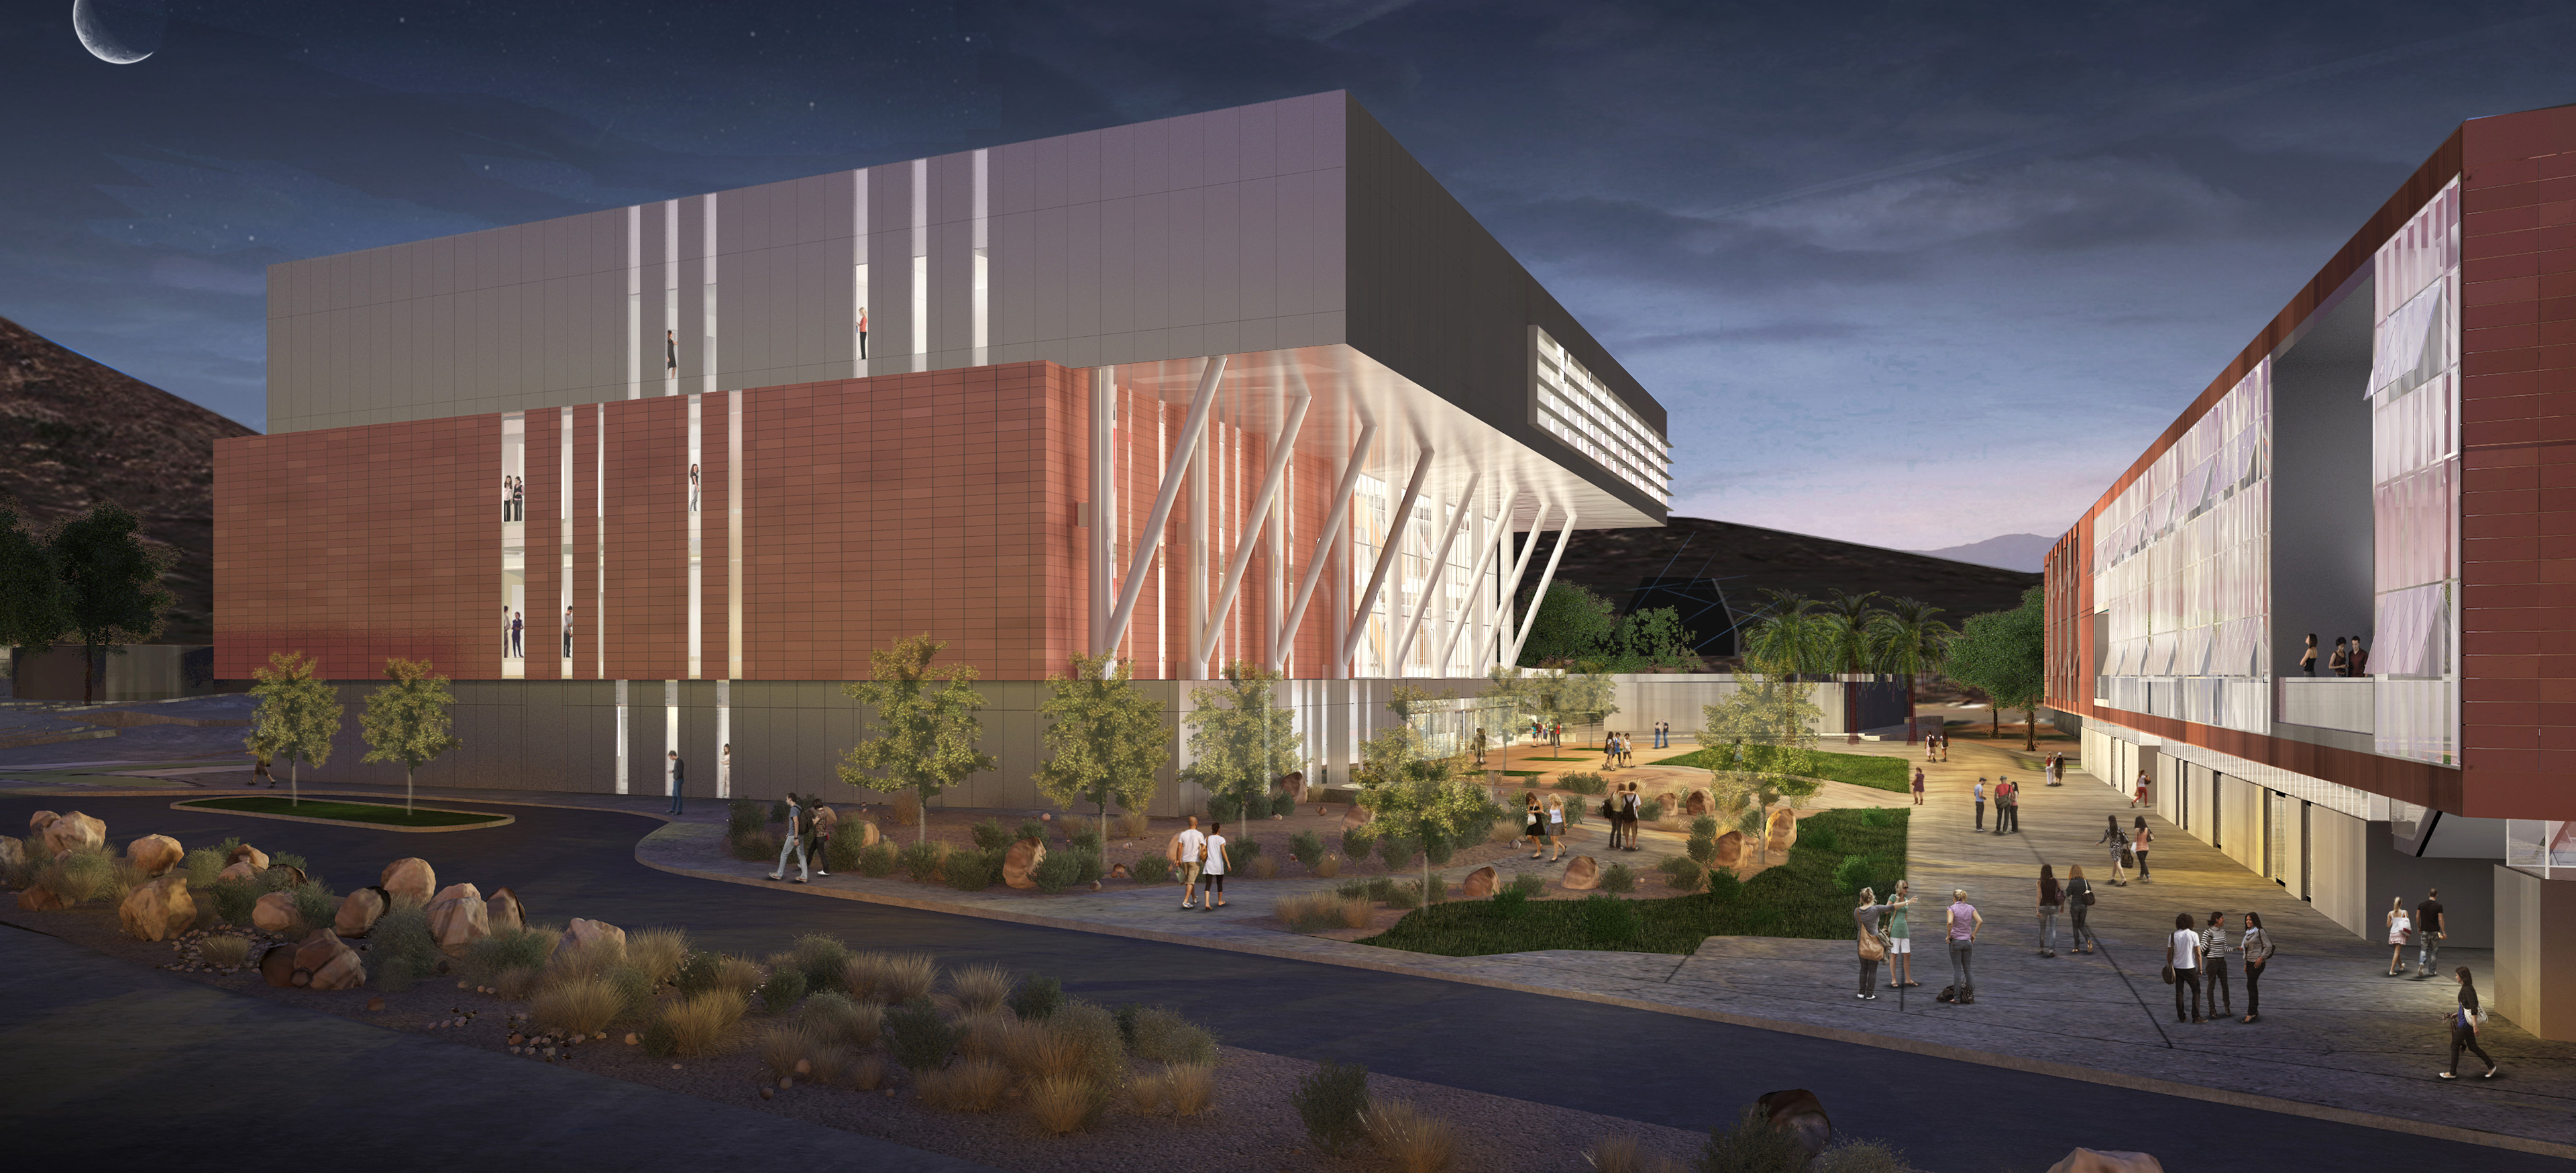 Palomar College Breaks Ground on Library and Learning Resource Center